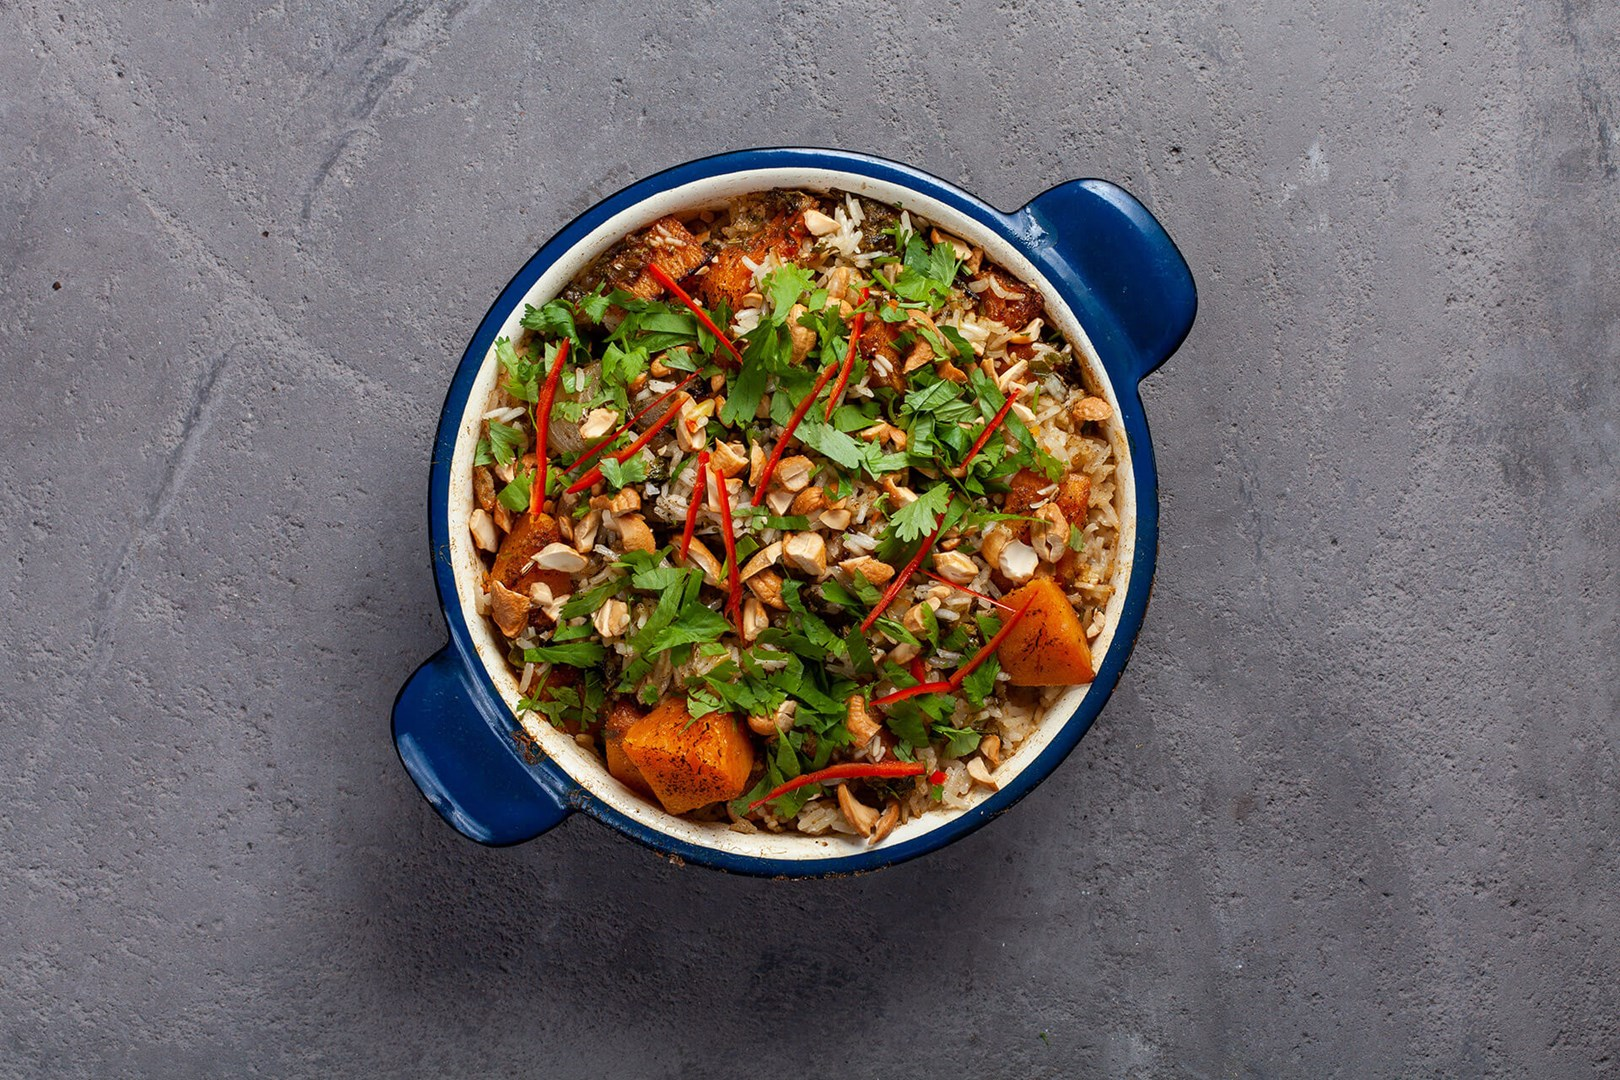 Dish with vegetarian biryani with butternut squash